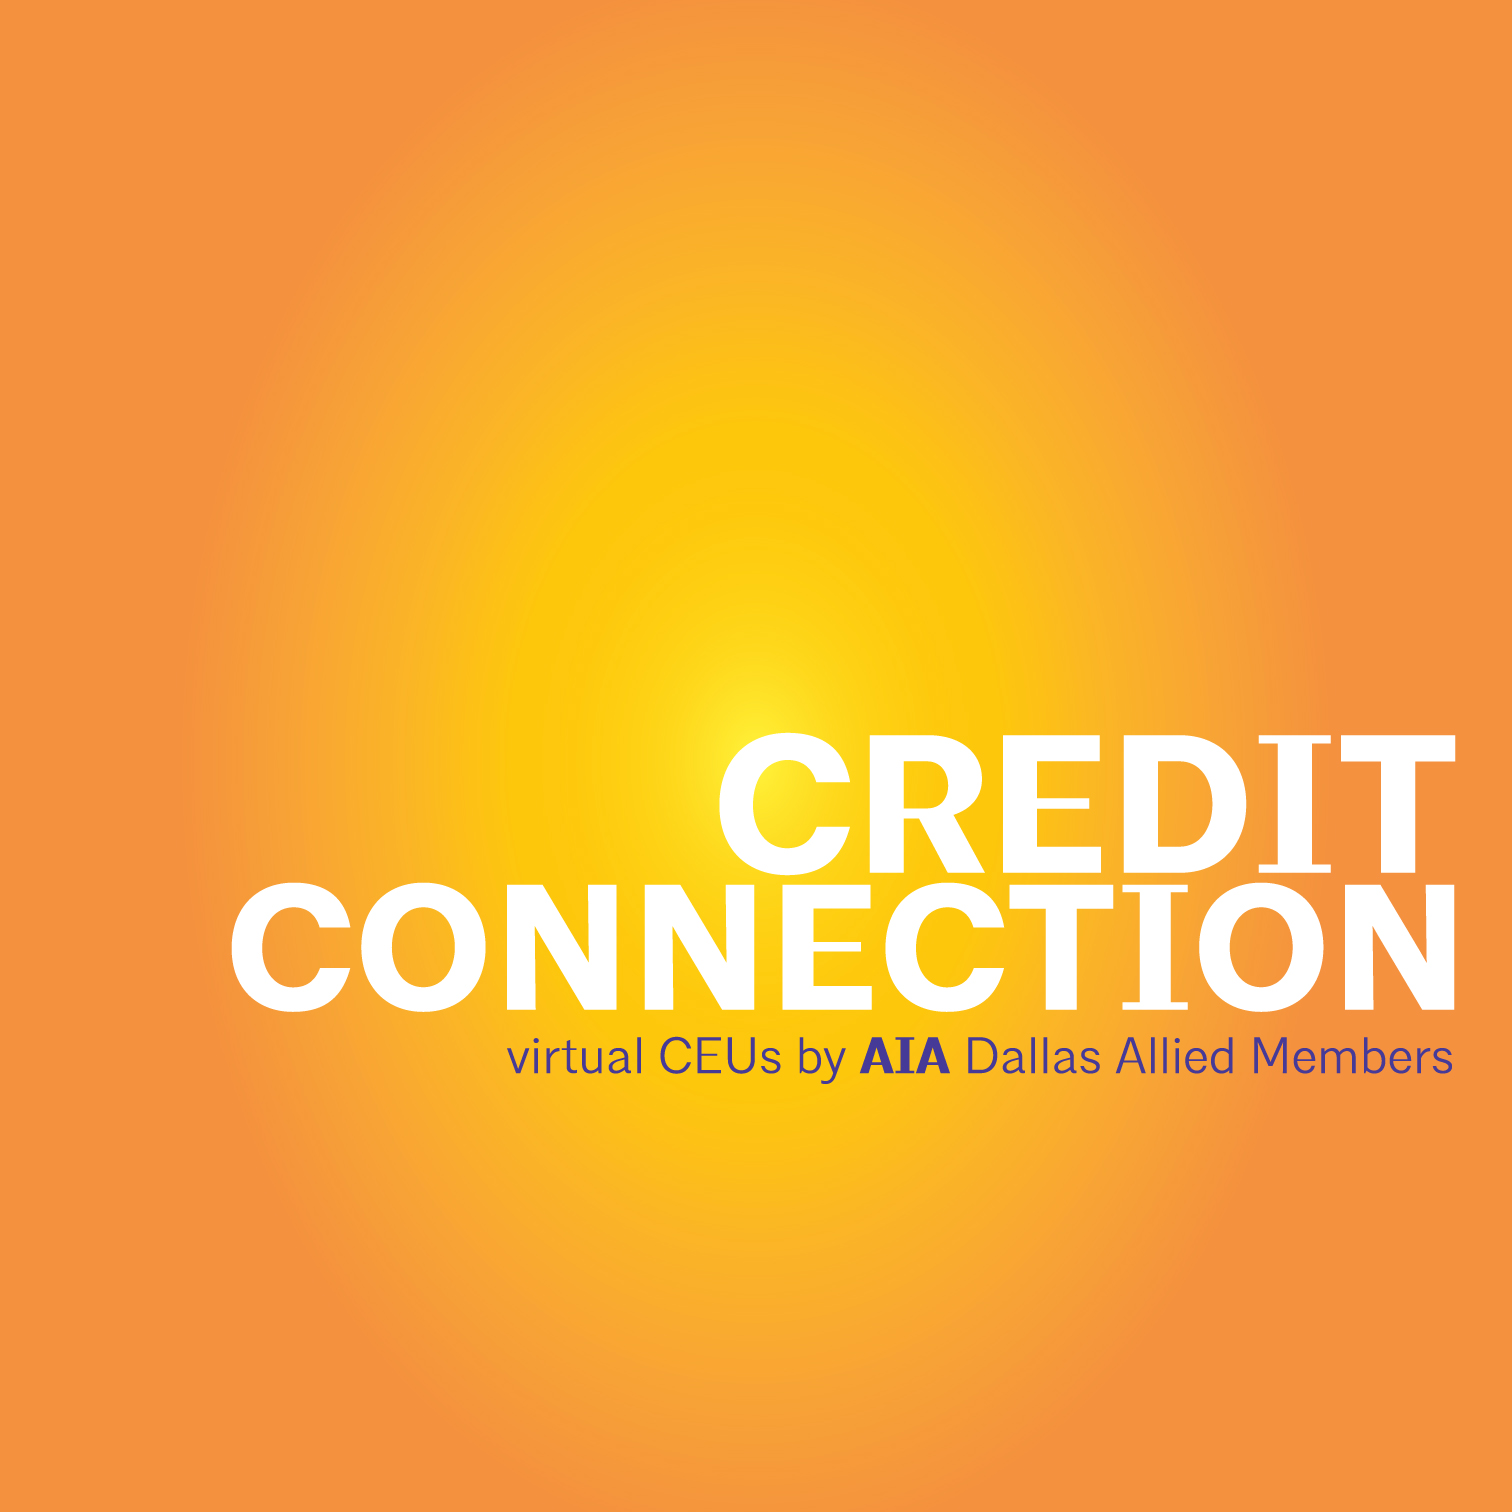 Credit Connection - ACME/Reading Rock